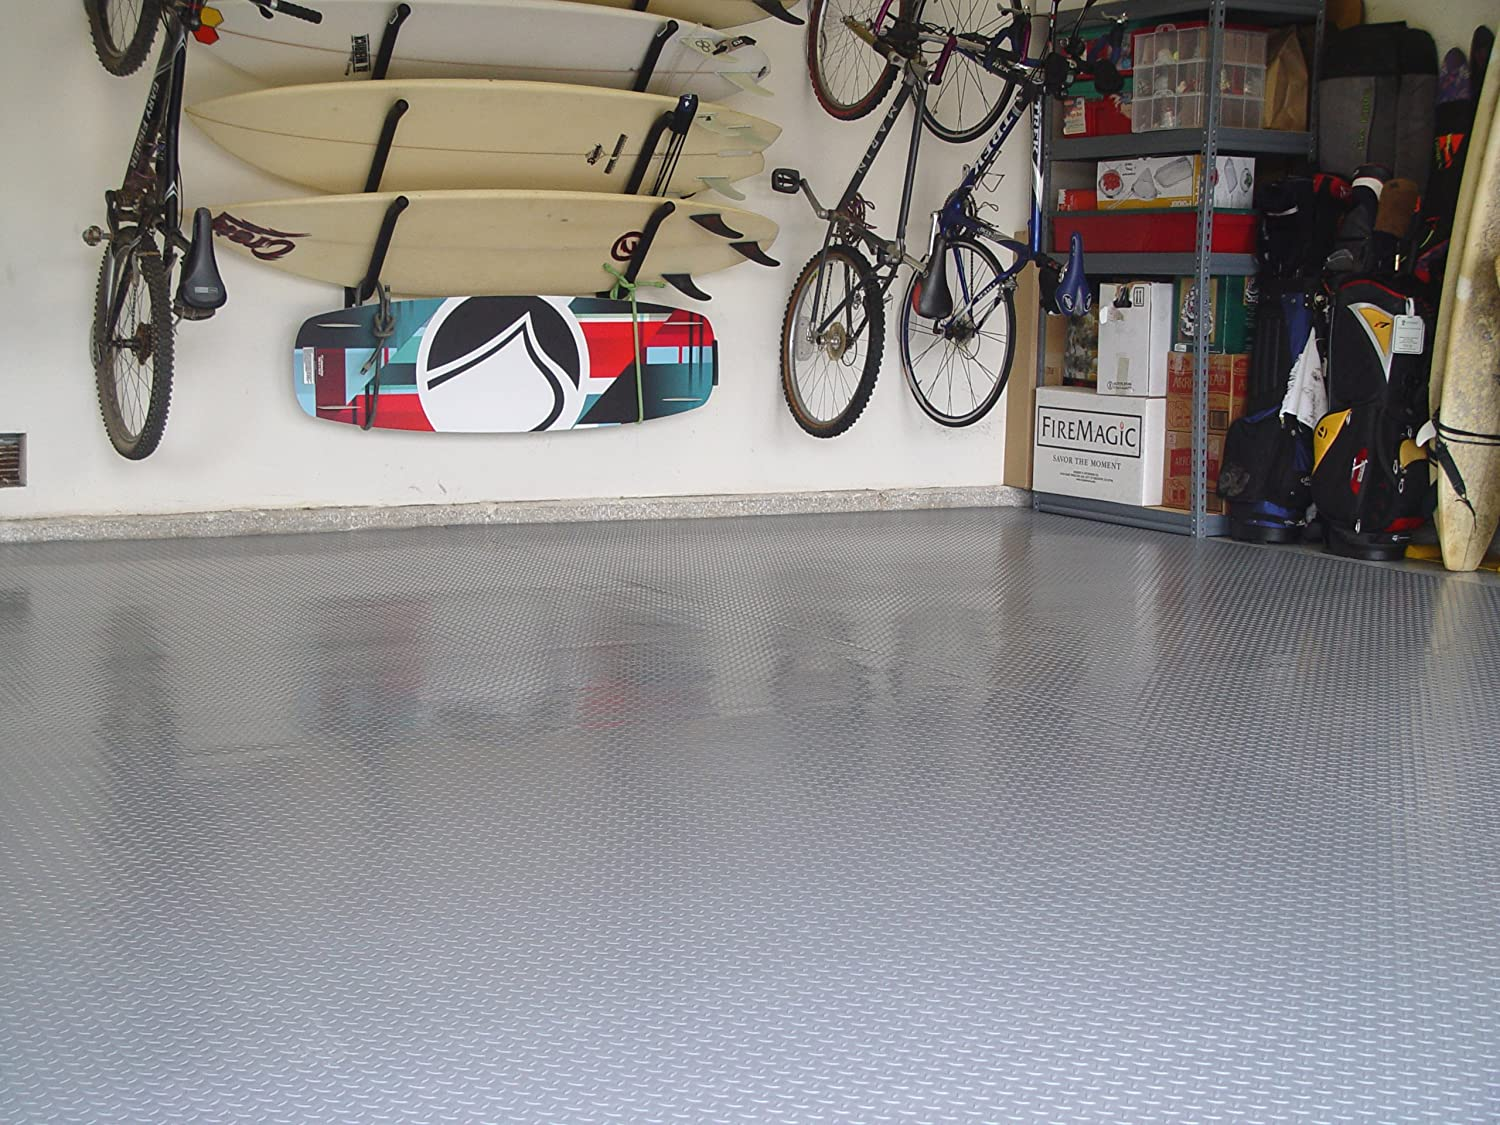 tapson c viewitem garage asp mat x floor car matxl